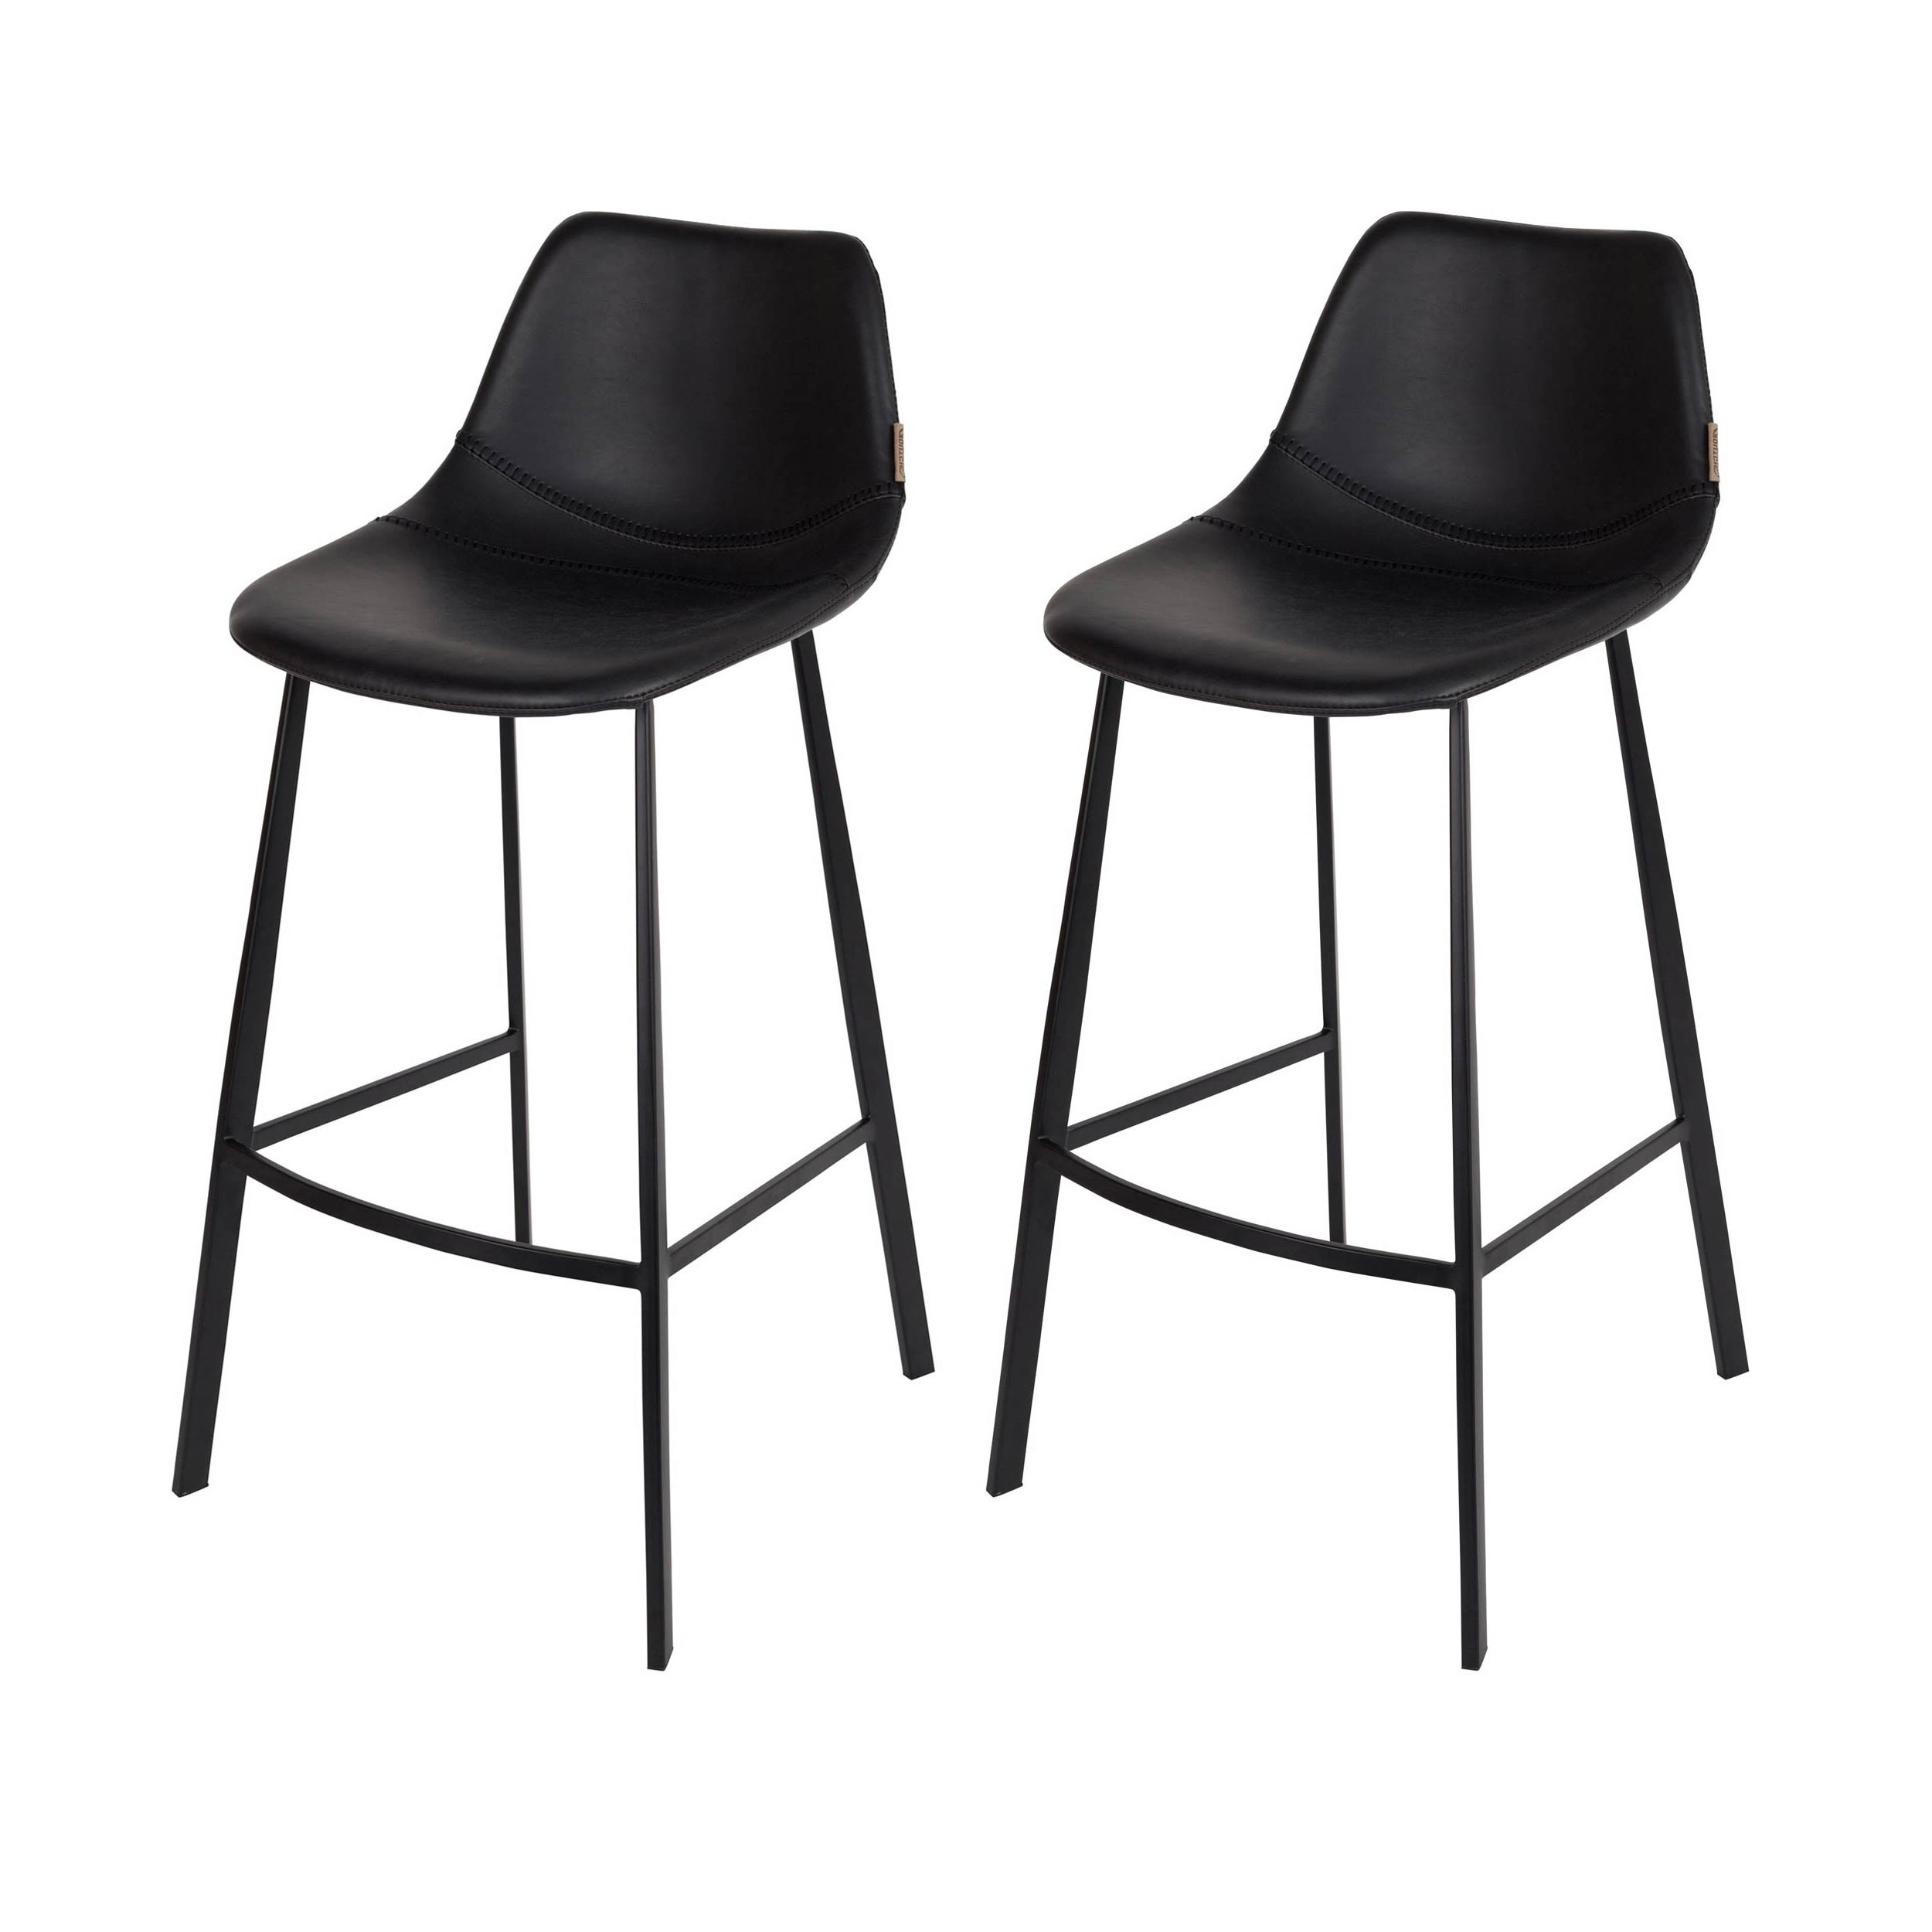 tabouret de bar franky noir commandez nos tabourets de bar franky noirs design rdv d co. Black Bedroom Furniture Sets. Home Design Ideas